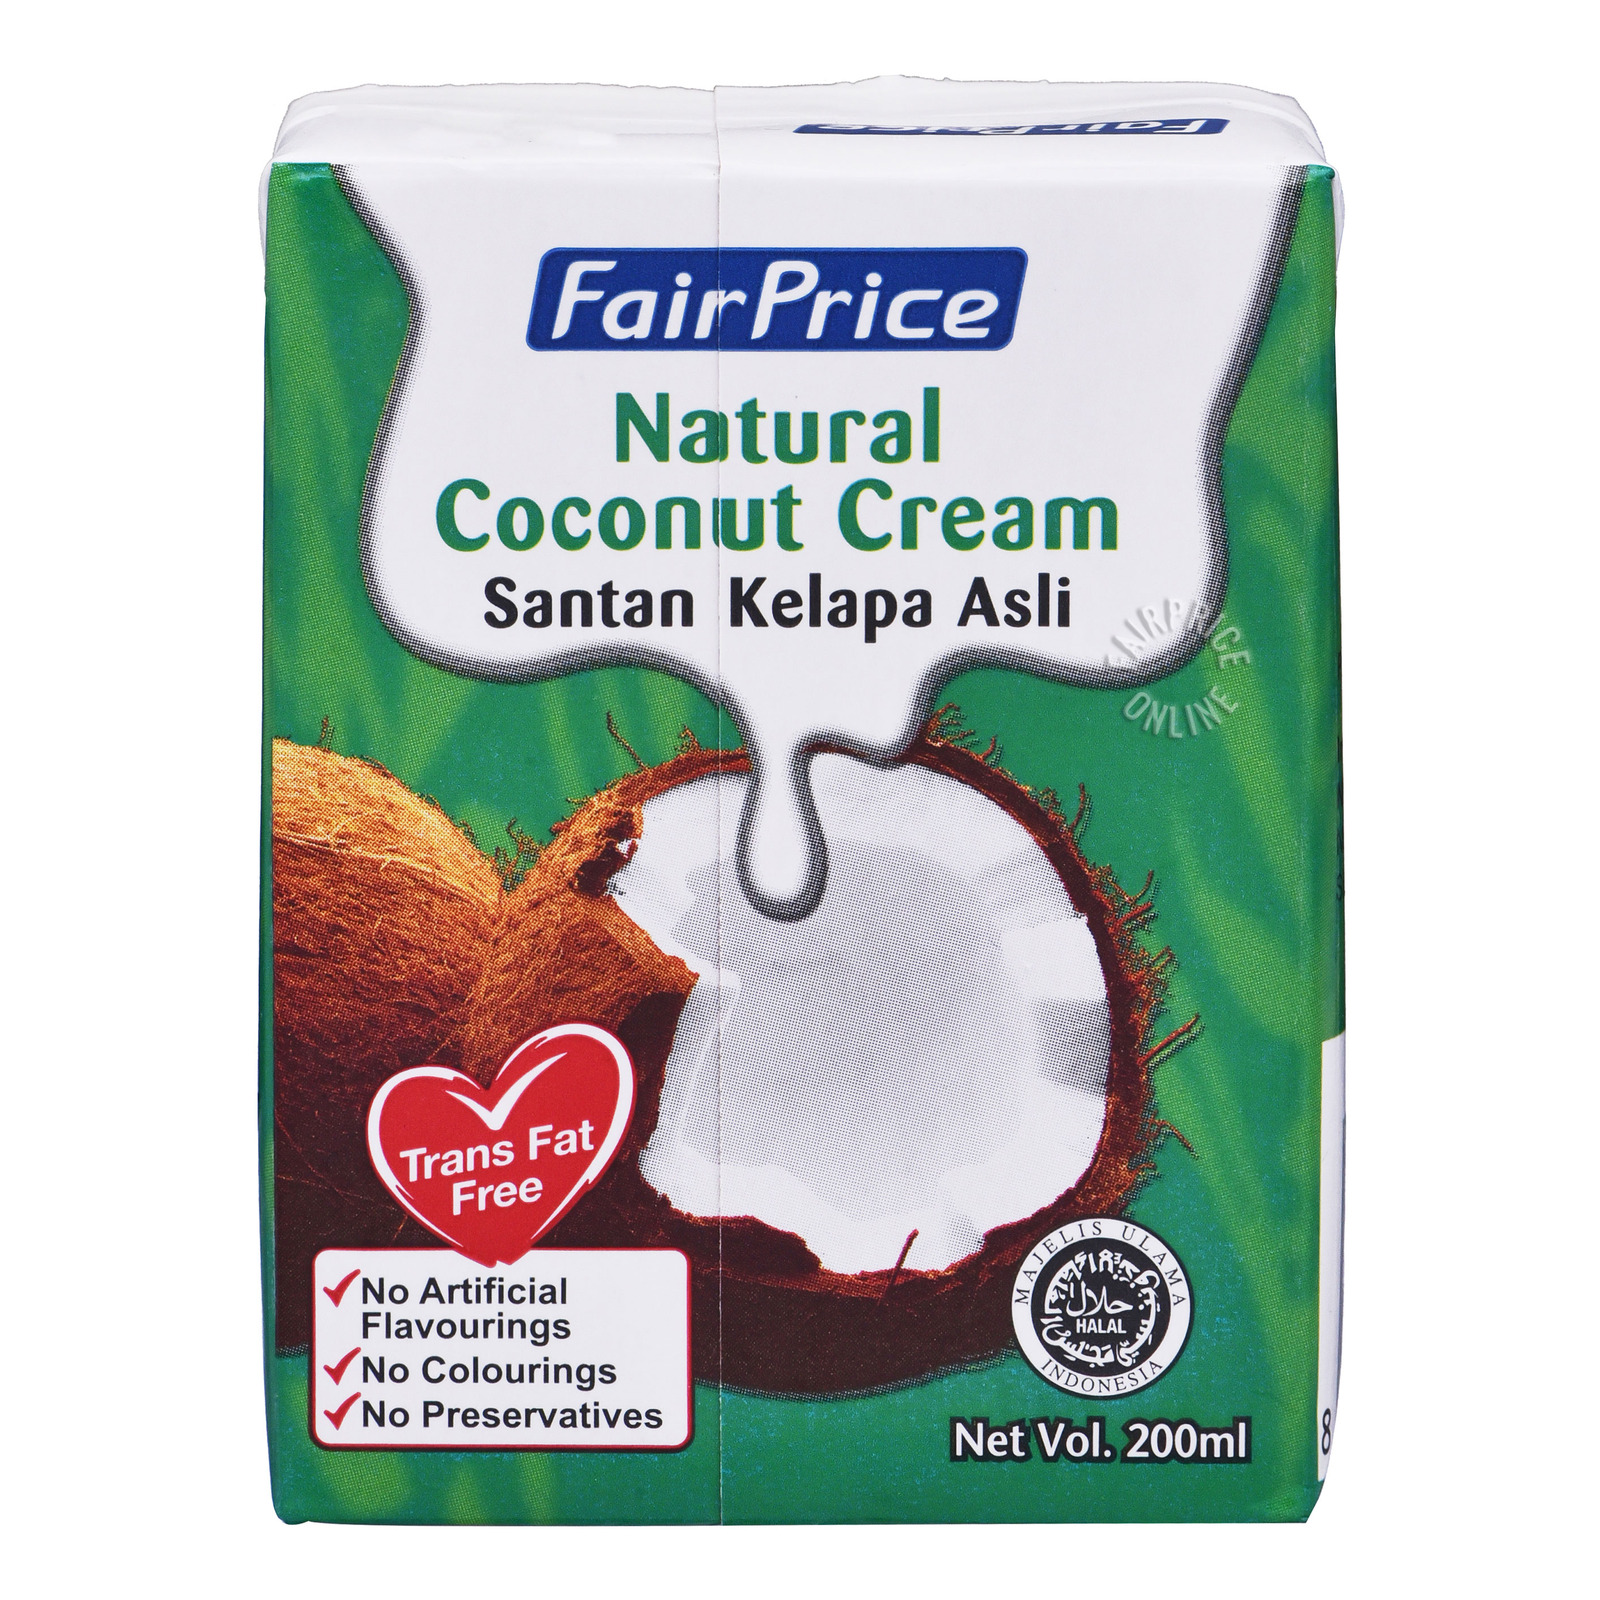 FairPrice Natural Coconut Cream